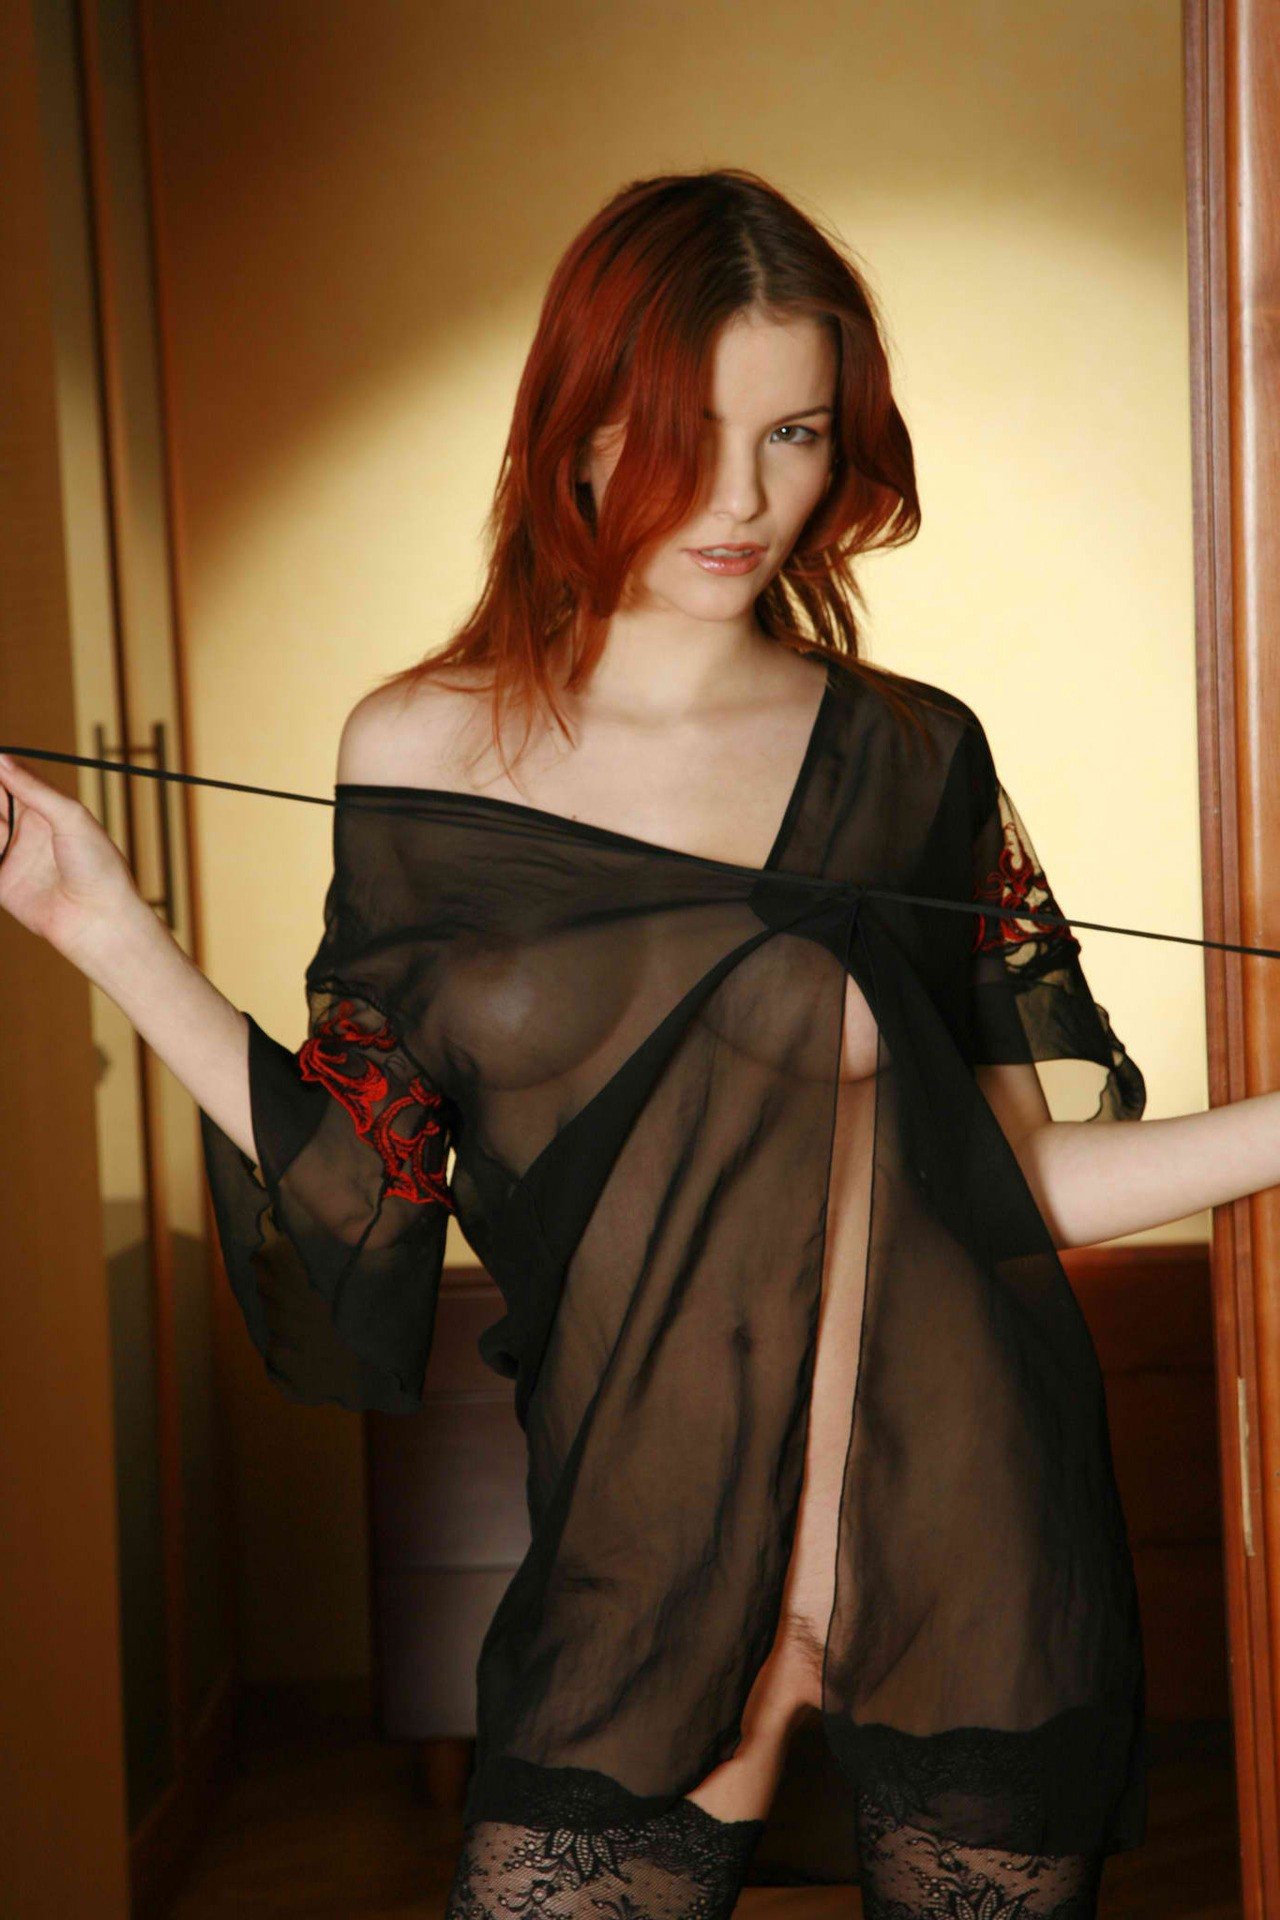 Hot Sexy RedHead Undressing Seethru Lingerie PerfectBoobs Nipples Pussy Stockings